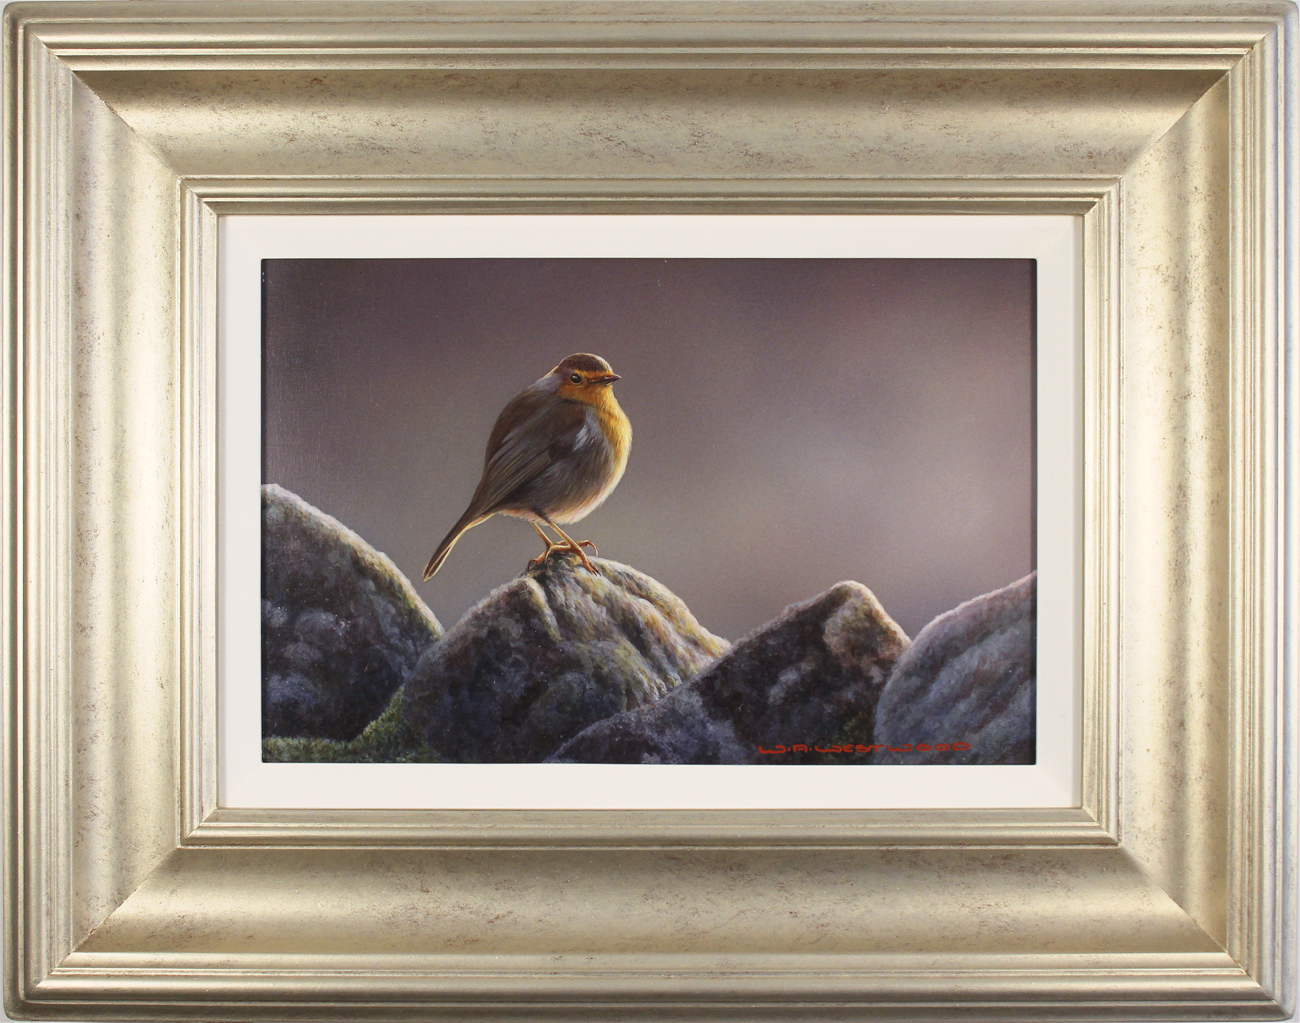 Wayne Westwood, Original oil painting on panel, The Country Robin. Click to enlarge